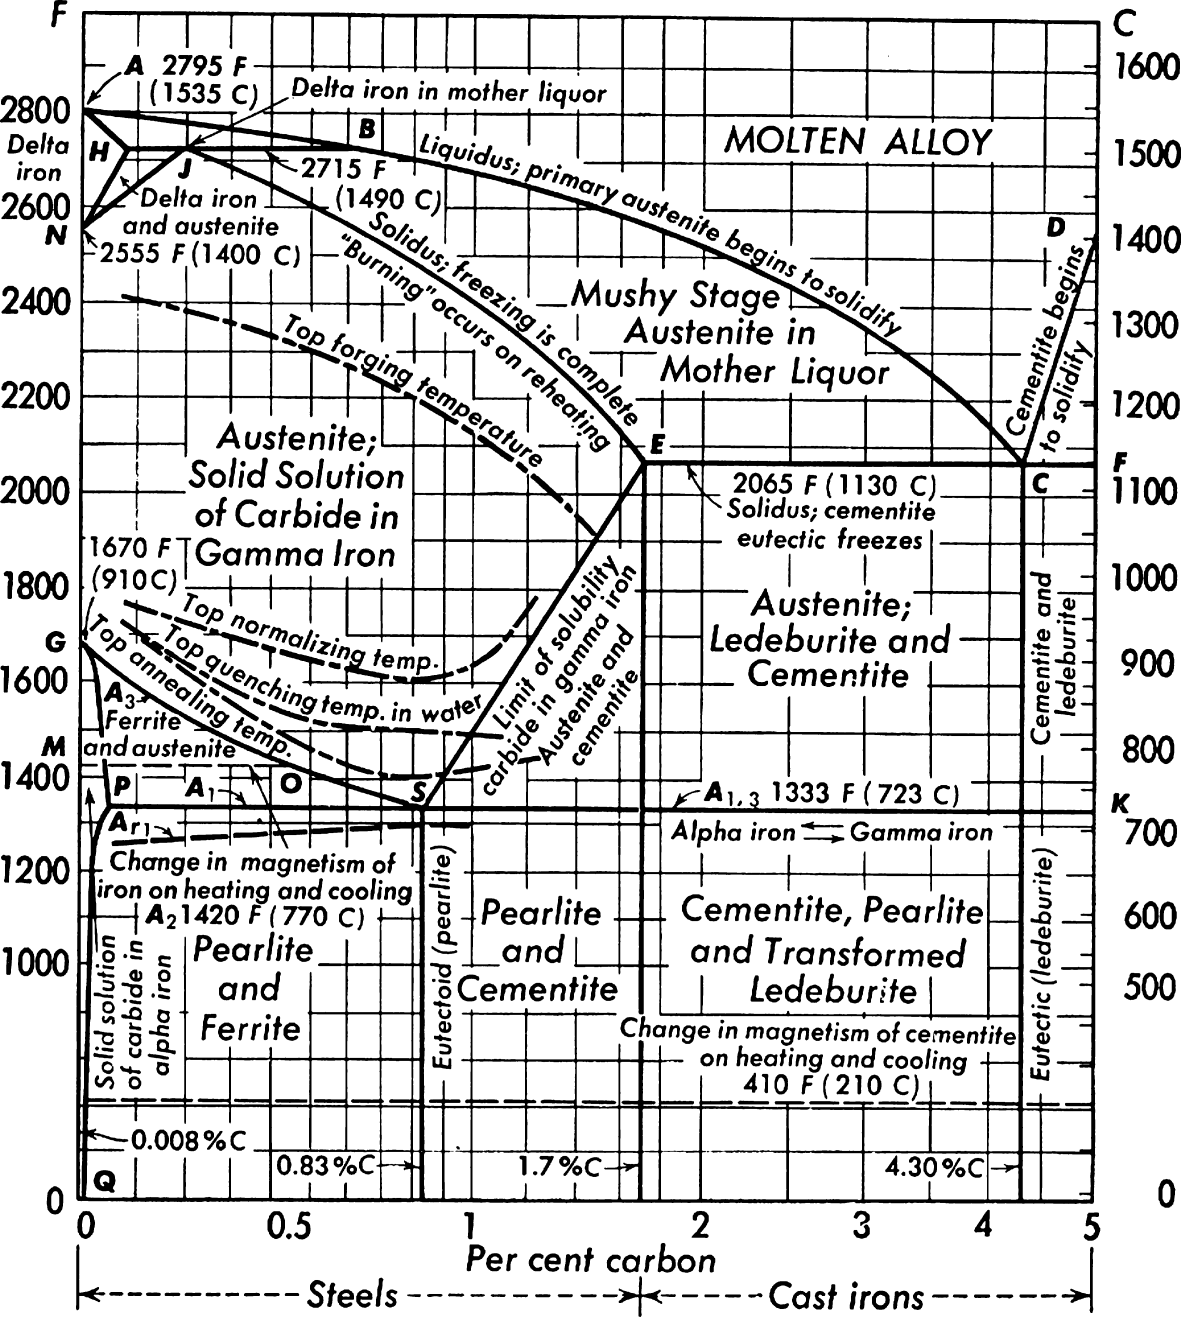 Ferrous Metals And Their Alloys Springerlink 2000 King Of The Road Wiring Diagram Open Image In New Window